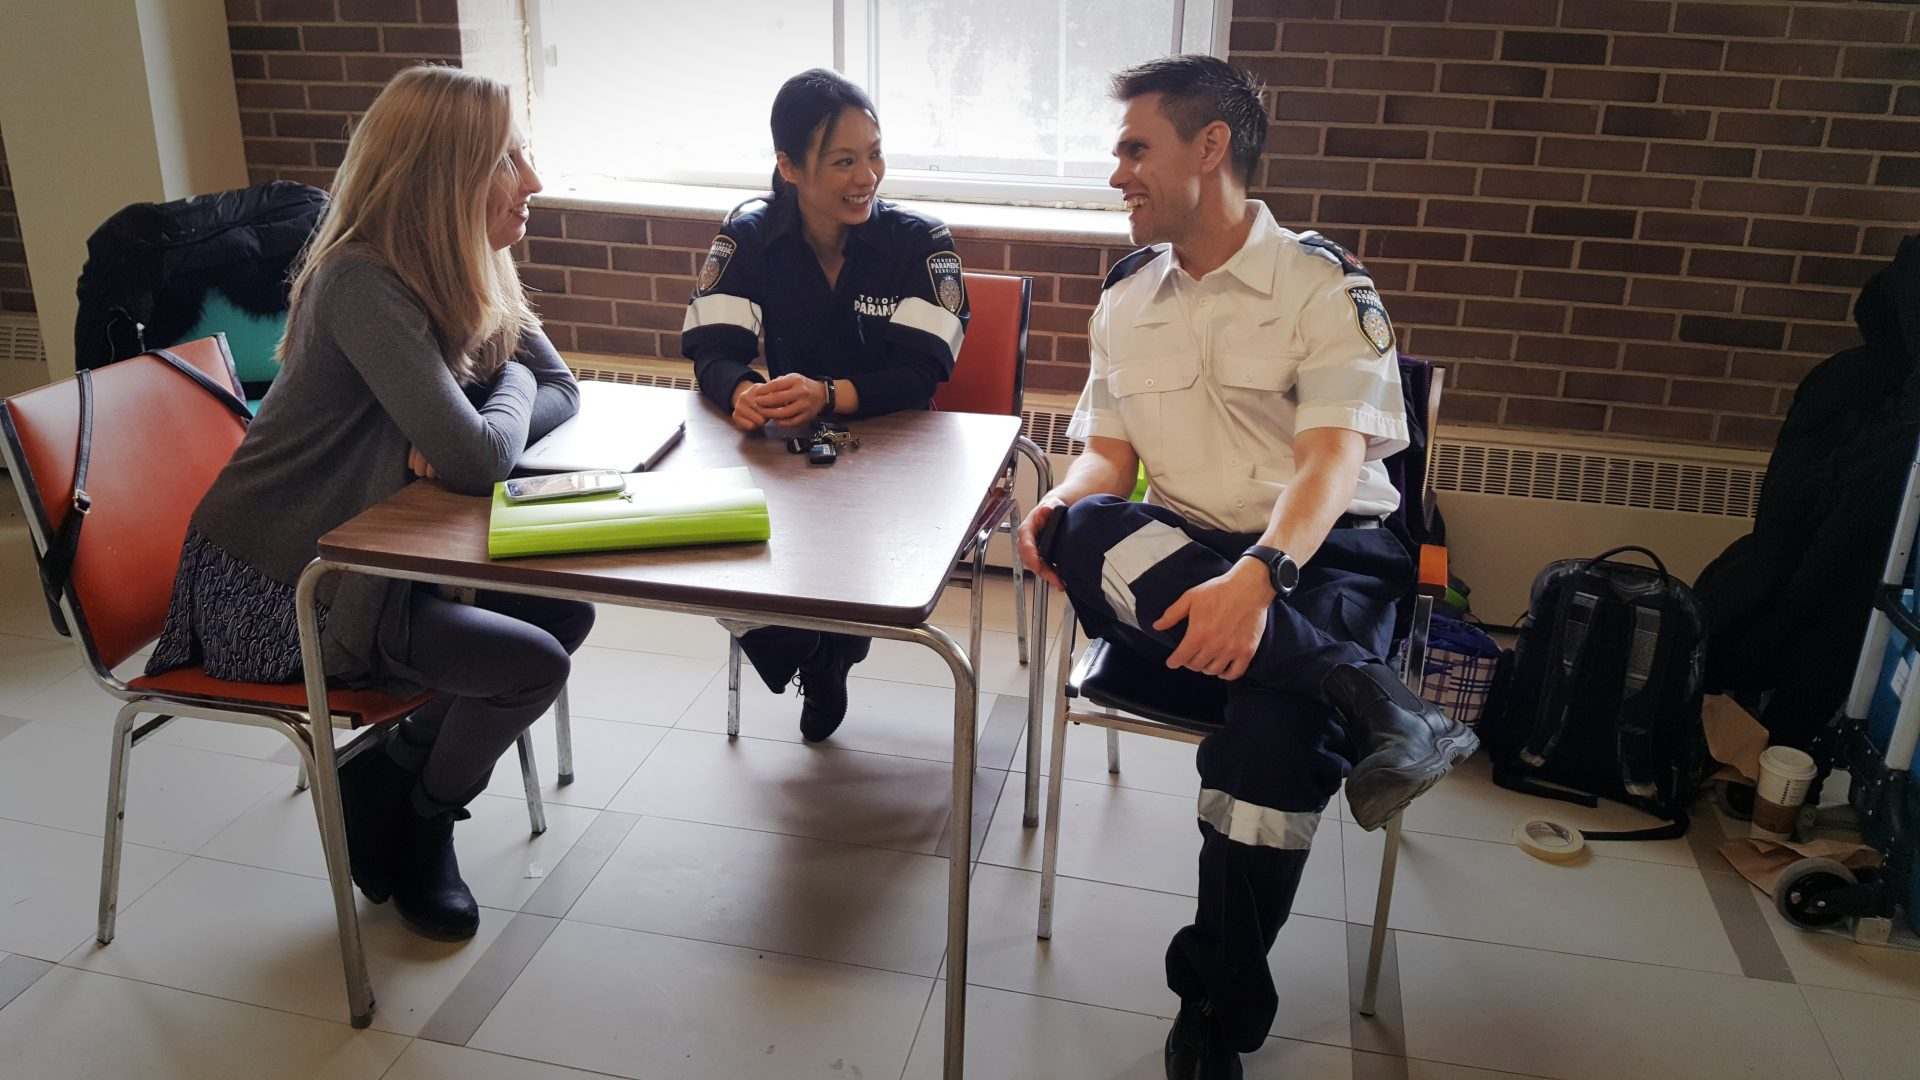 Sarah, Jessie and Michael sitting in a CPLC clinic space